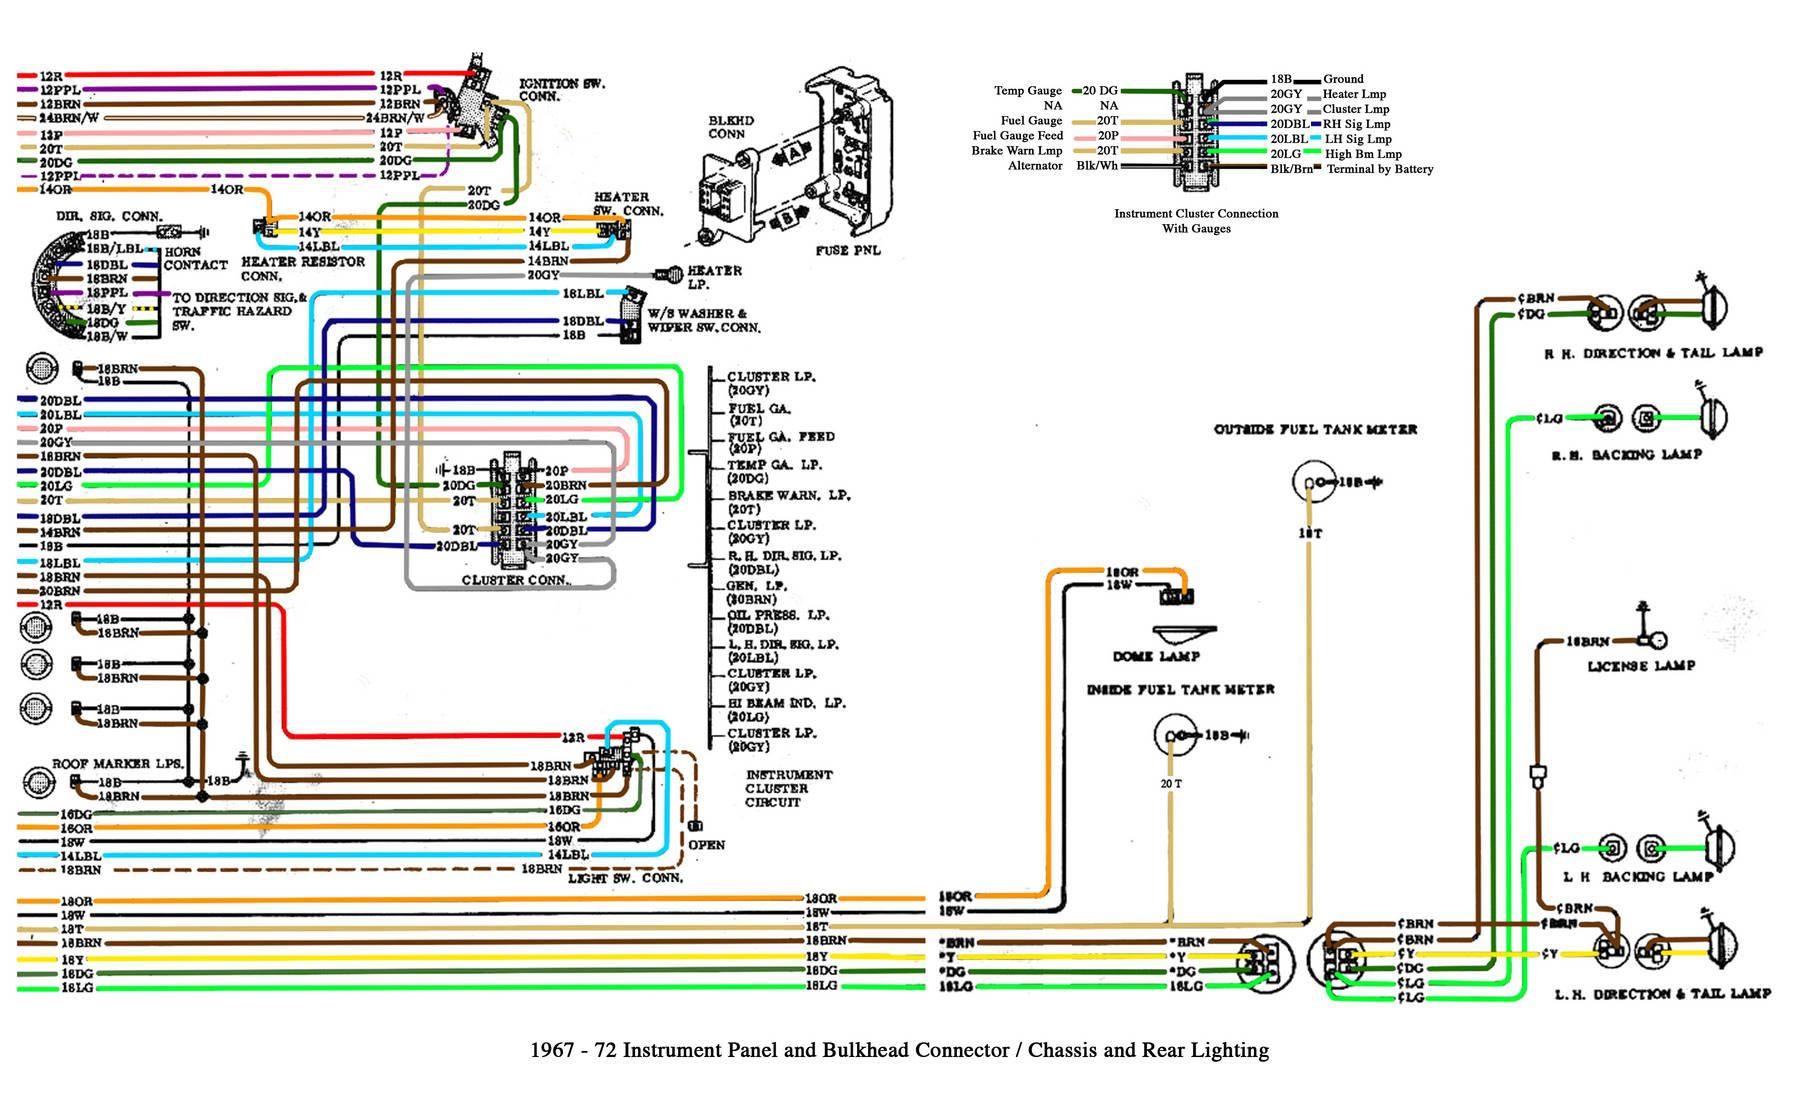 Old Gmc Pickup Wiring Diagrams on gmc truck fuse diagrams, gmc pickup parts diagram, gmc general trucks wiring-diagram, gmc pickup accessories, gmc radio wiring diagram, gmc savana wiring diagrams, gmc pickup owners manuals, willys pickup wiring diagrams, gmc jimmy wiring diagrams, nissan pickup wiring diagrams, gmc bronco, gmc electrical diagrams, gmc pickup seats, gmc pickup drawings, 1990 gmc wiring diagrams, gmc typhoon wiring diagrams, 1996 gmc wiring diagrams, toyota pickup wiring diagrams, ford pickup wiring diagrams, gmc brake light wiring diagram,